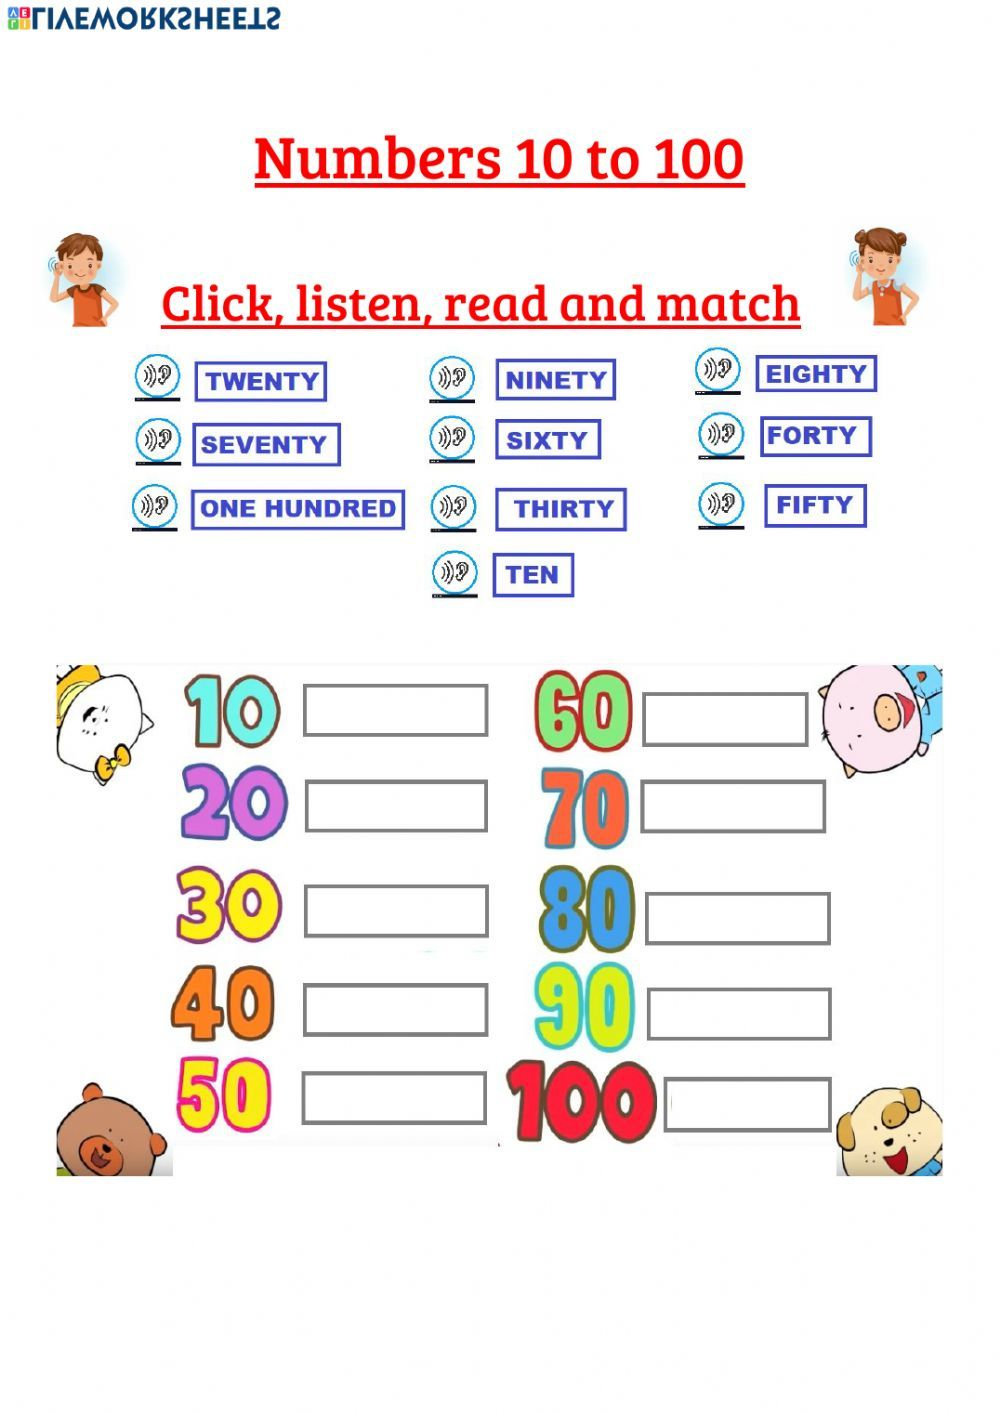 Numbers online worksheet. You can do the exercises online